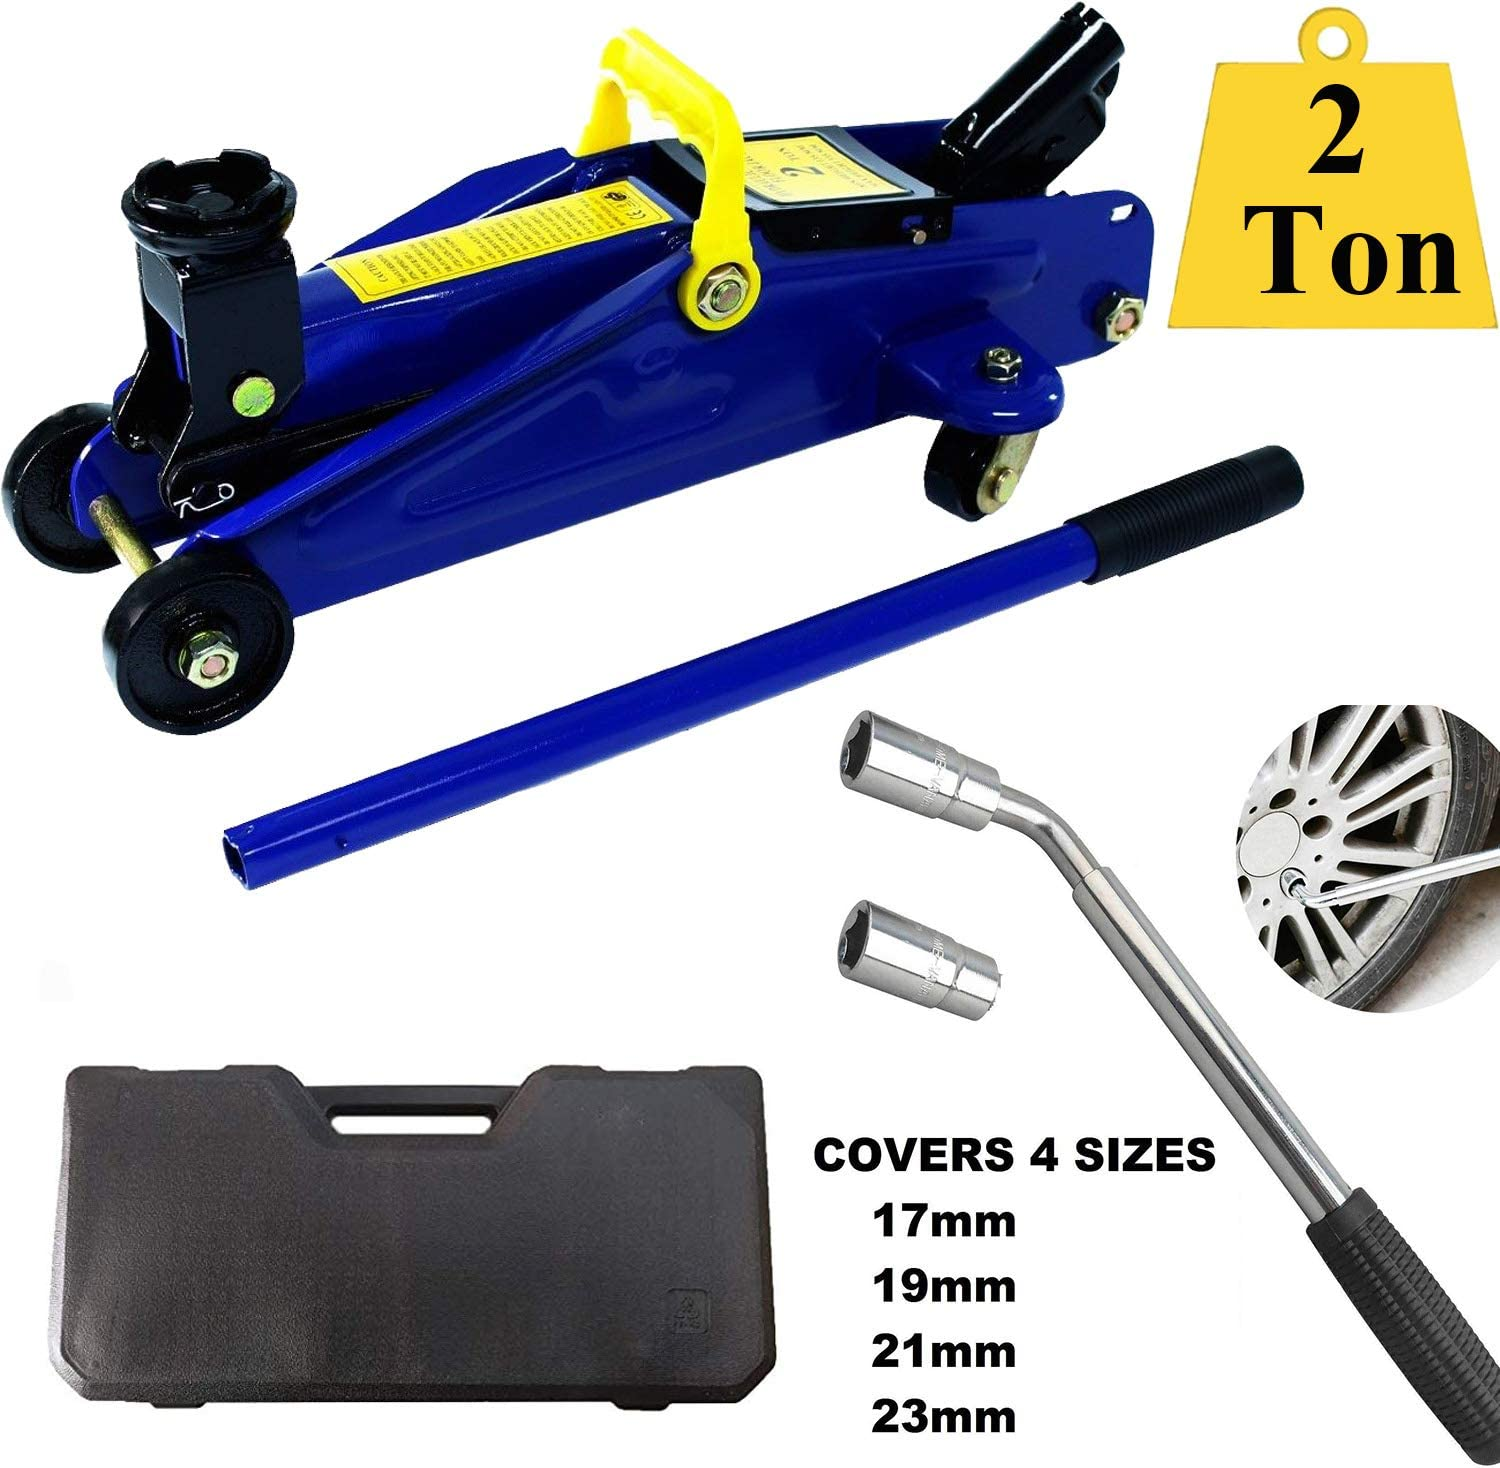 ZanGe 2 Tonne High Lift Hydraulic Trolley Jack with Storage Case Blue+Extending Power Telescoping Lug Nut Wrench with 17mm 19mm 21mm 23mm Sockets for Car Van Truck Repair Emergency Tool